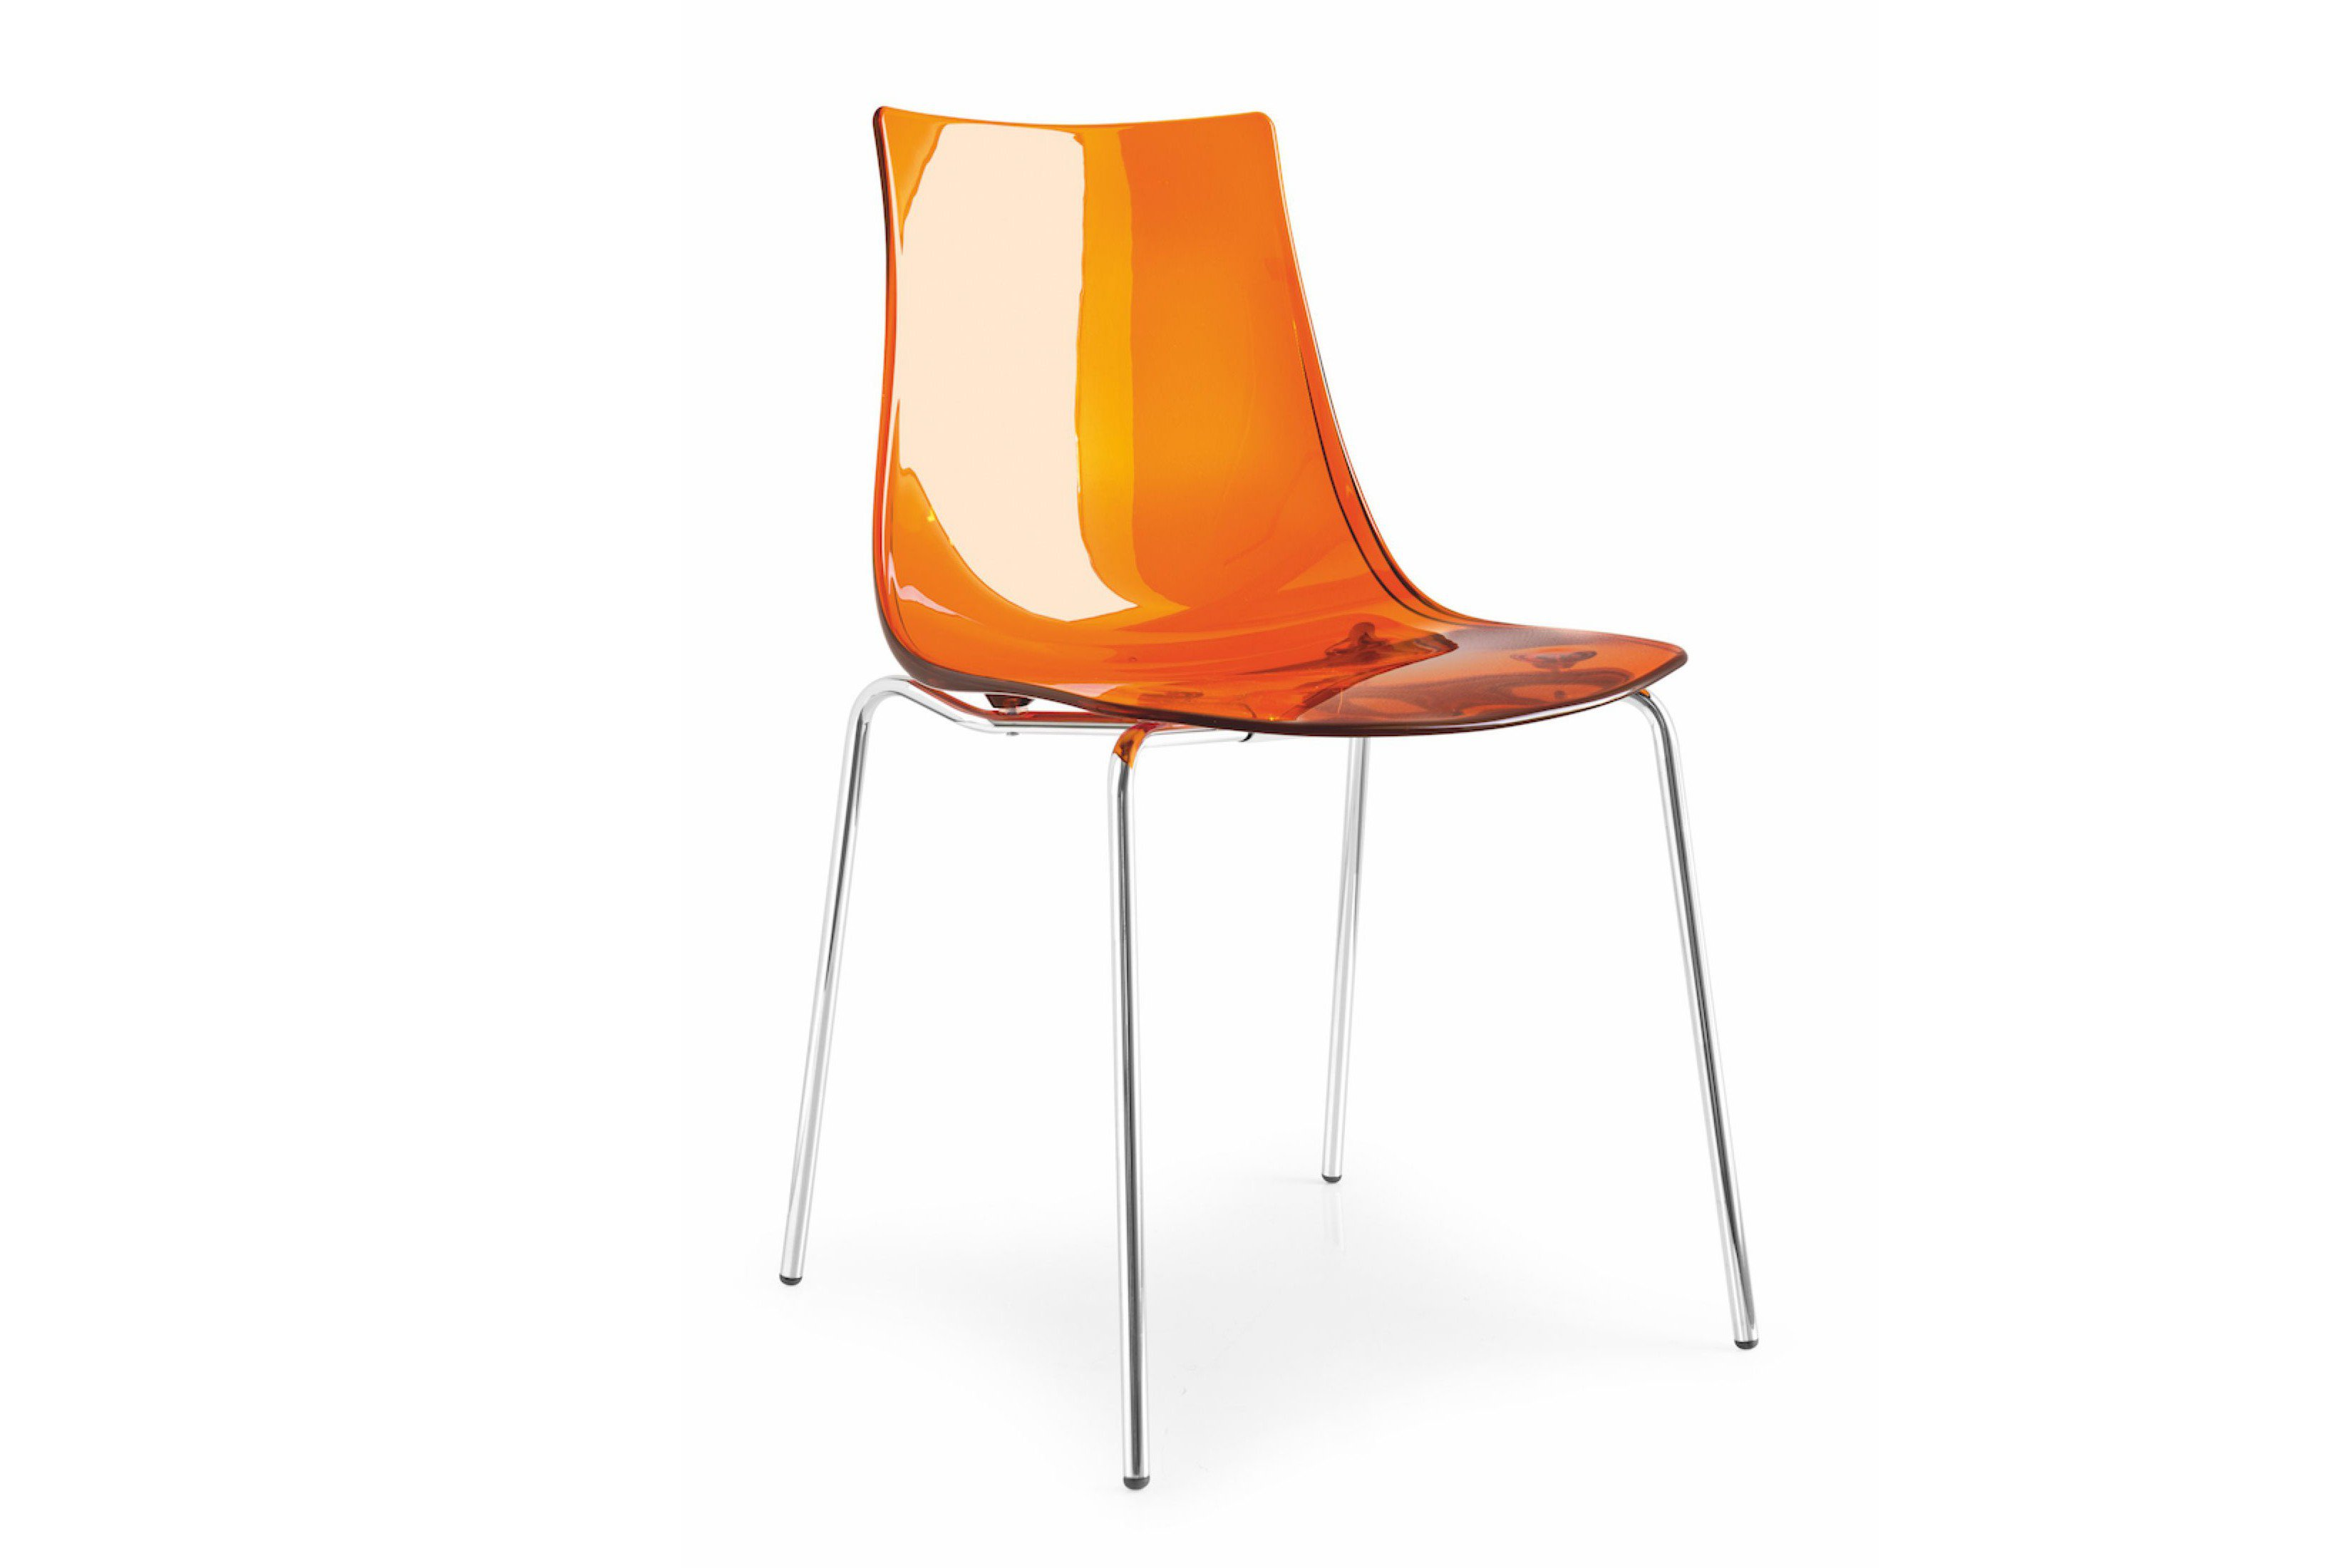 connubia by calligaris stuhl led orange m bel letz ihr online shop. Black Bedroom Furniture Sets. Home Design Ideas